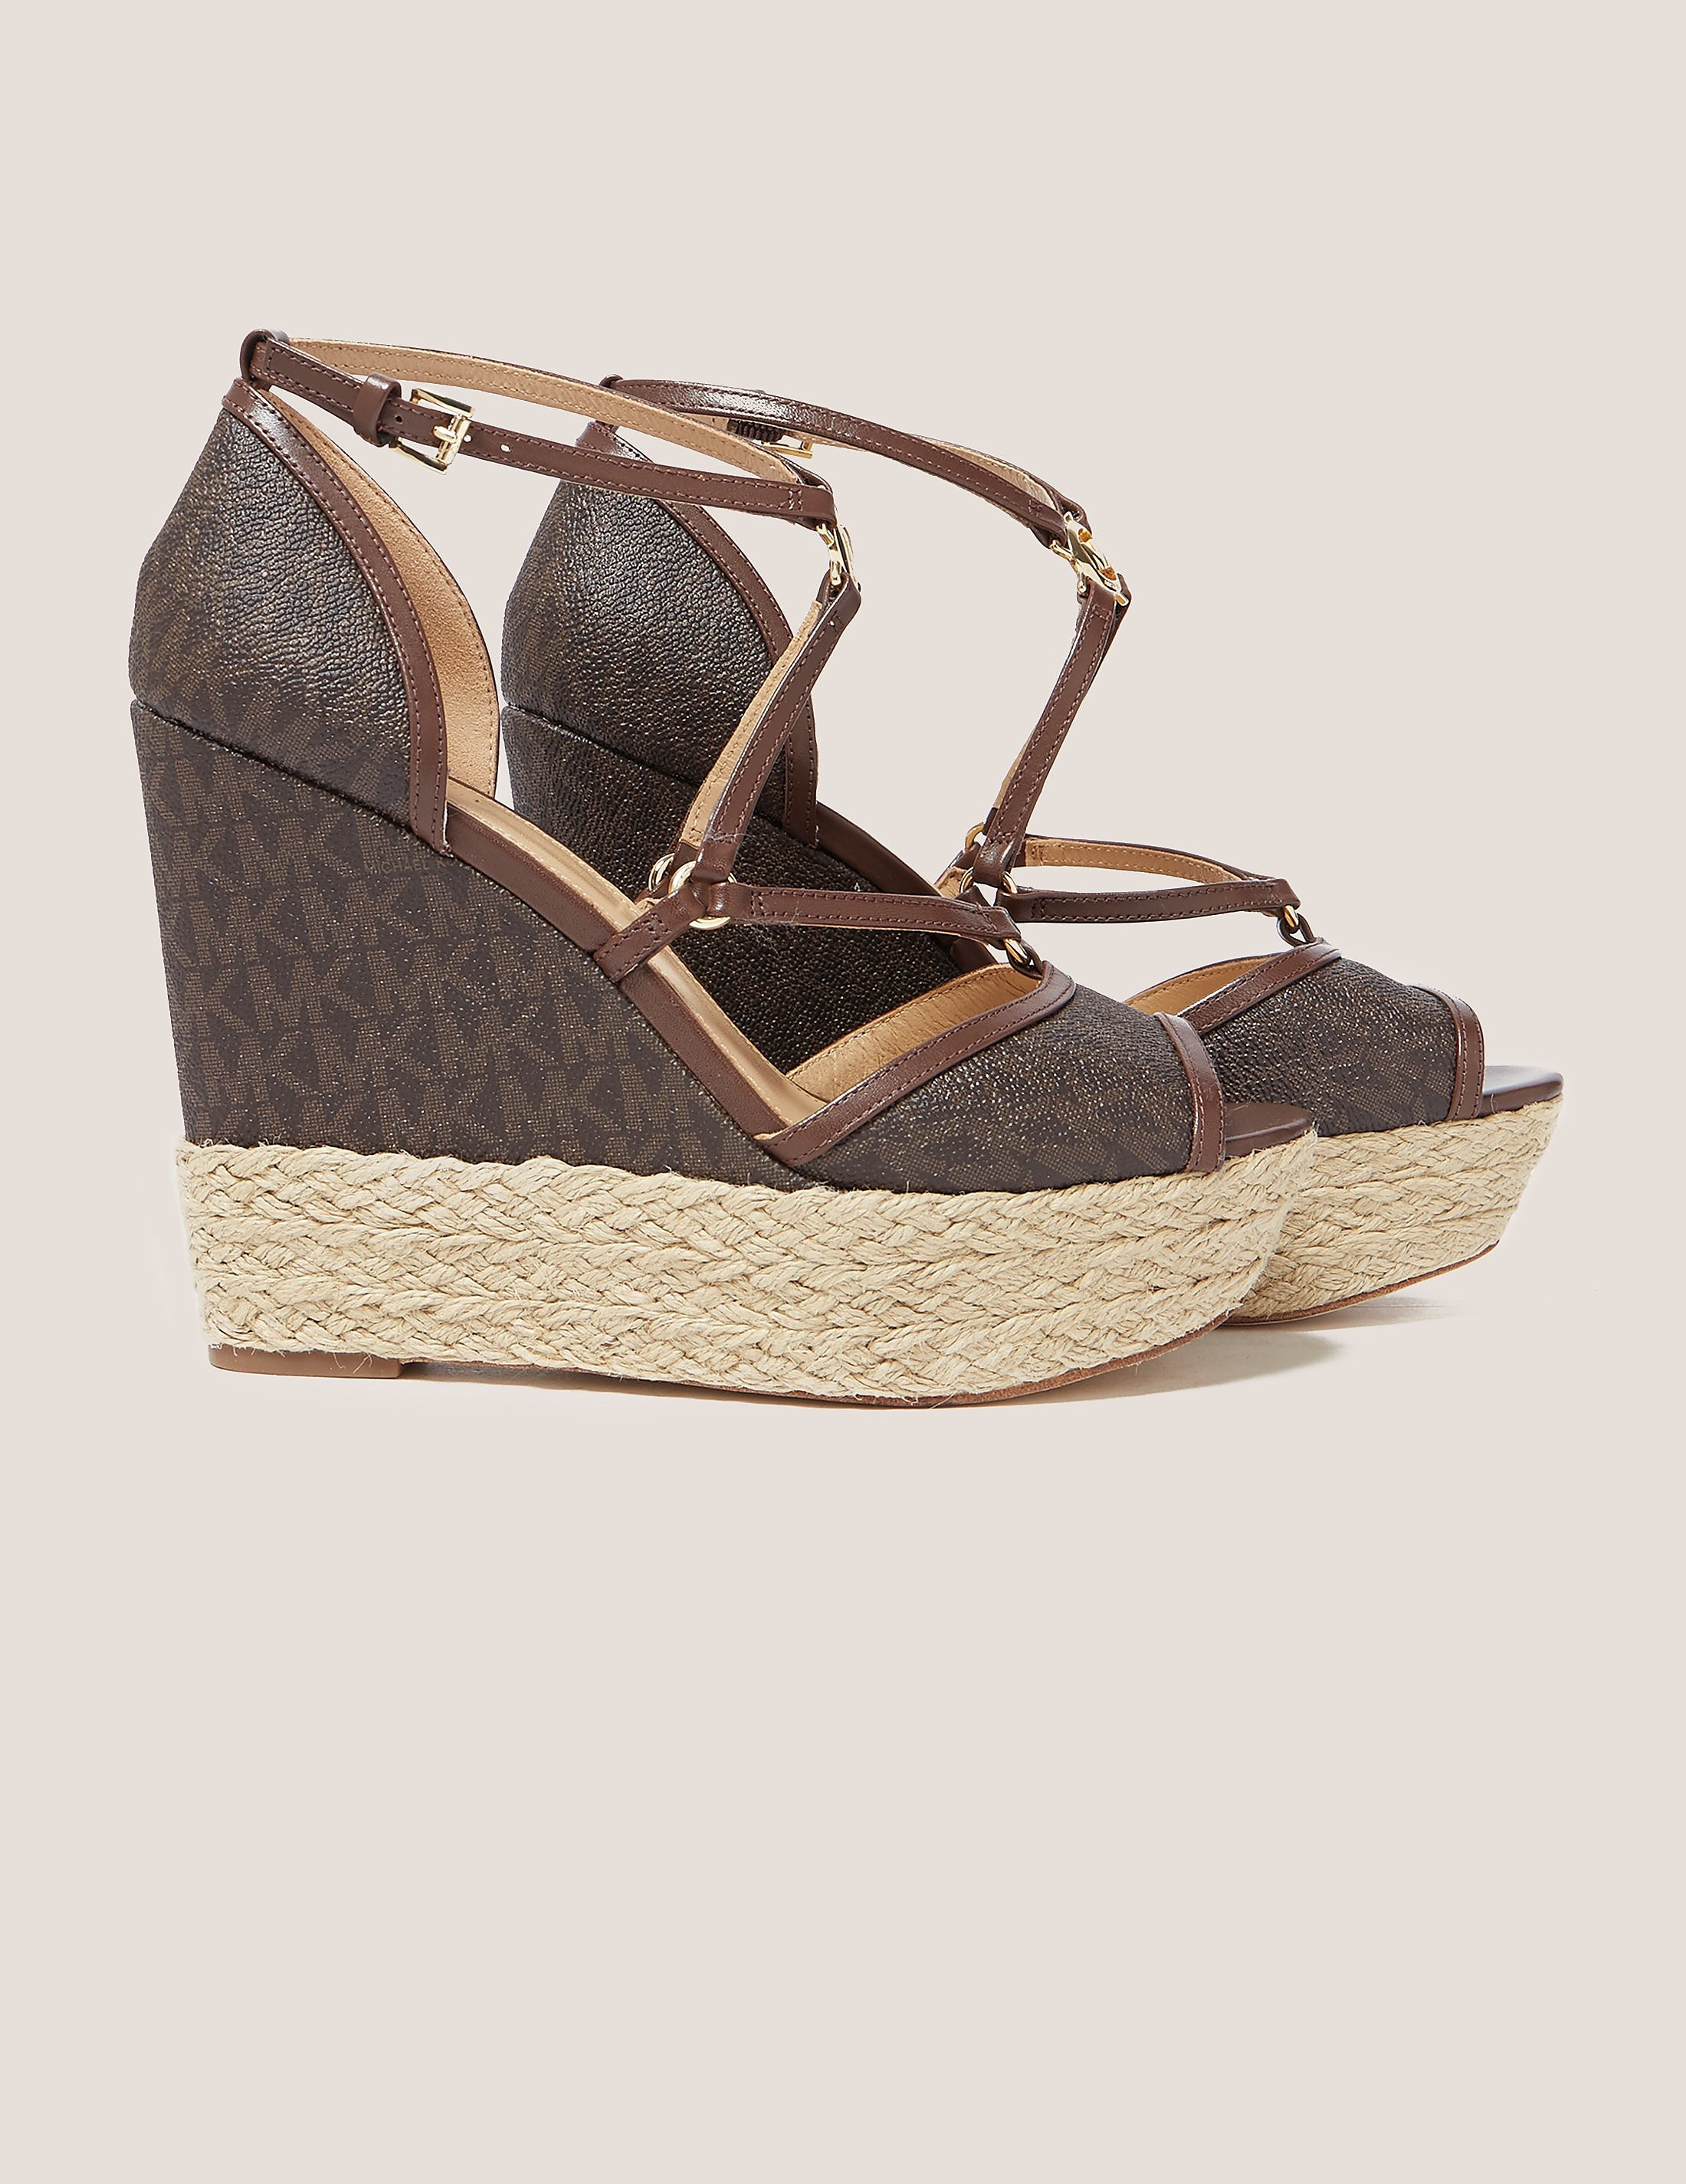 Michael Kors Terri Platform Wedge Sandals